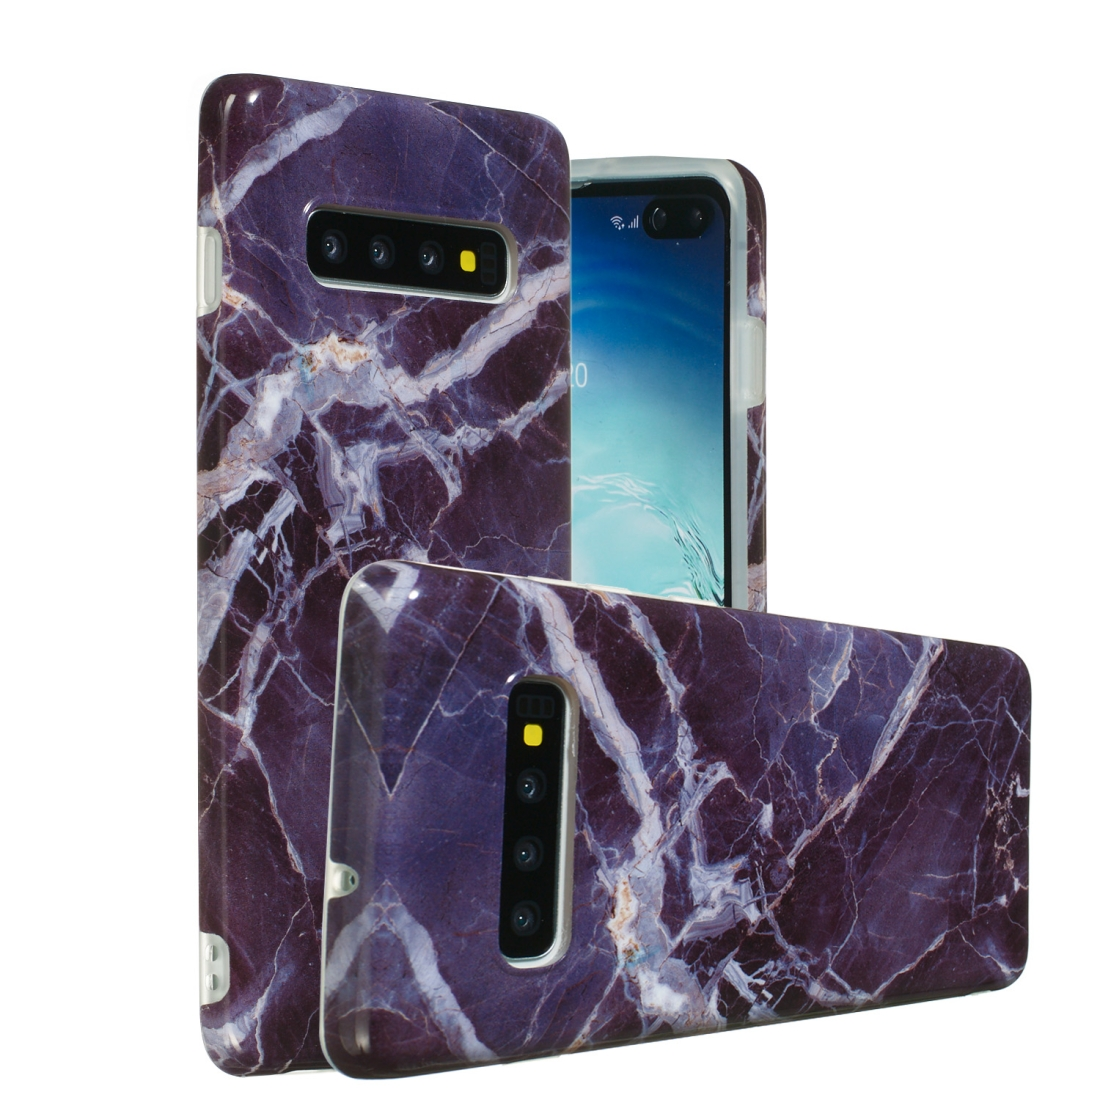 TPU Protective Case For Galaxy S10 (Gray Marble)